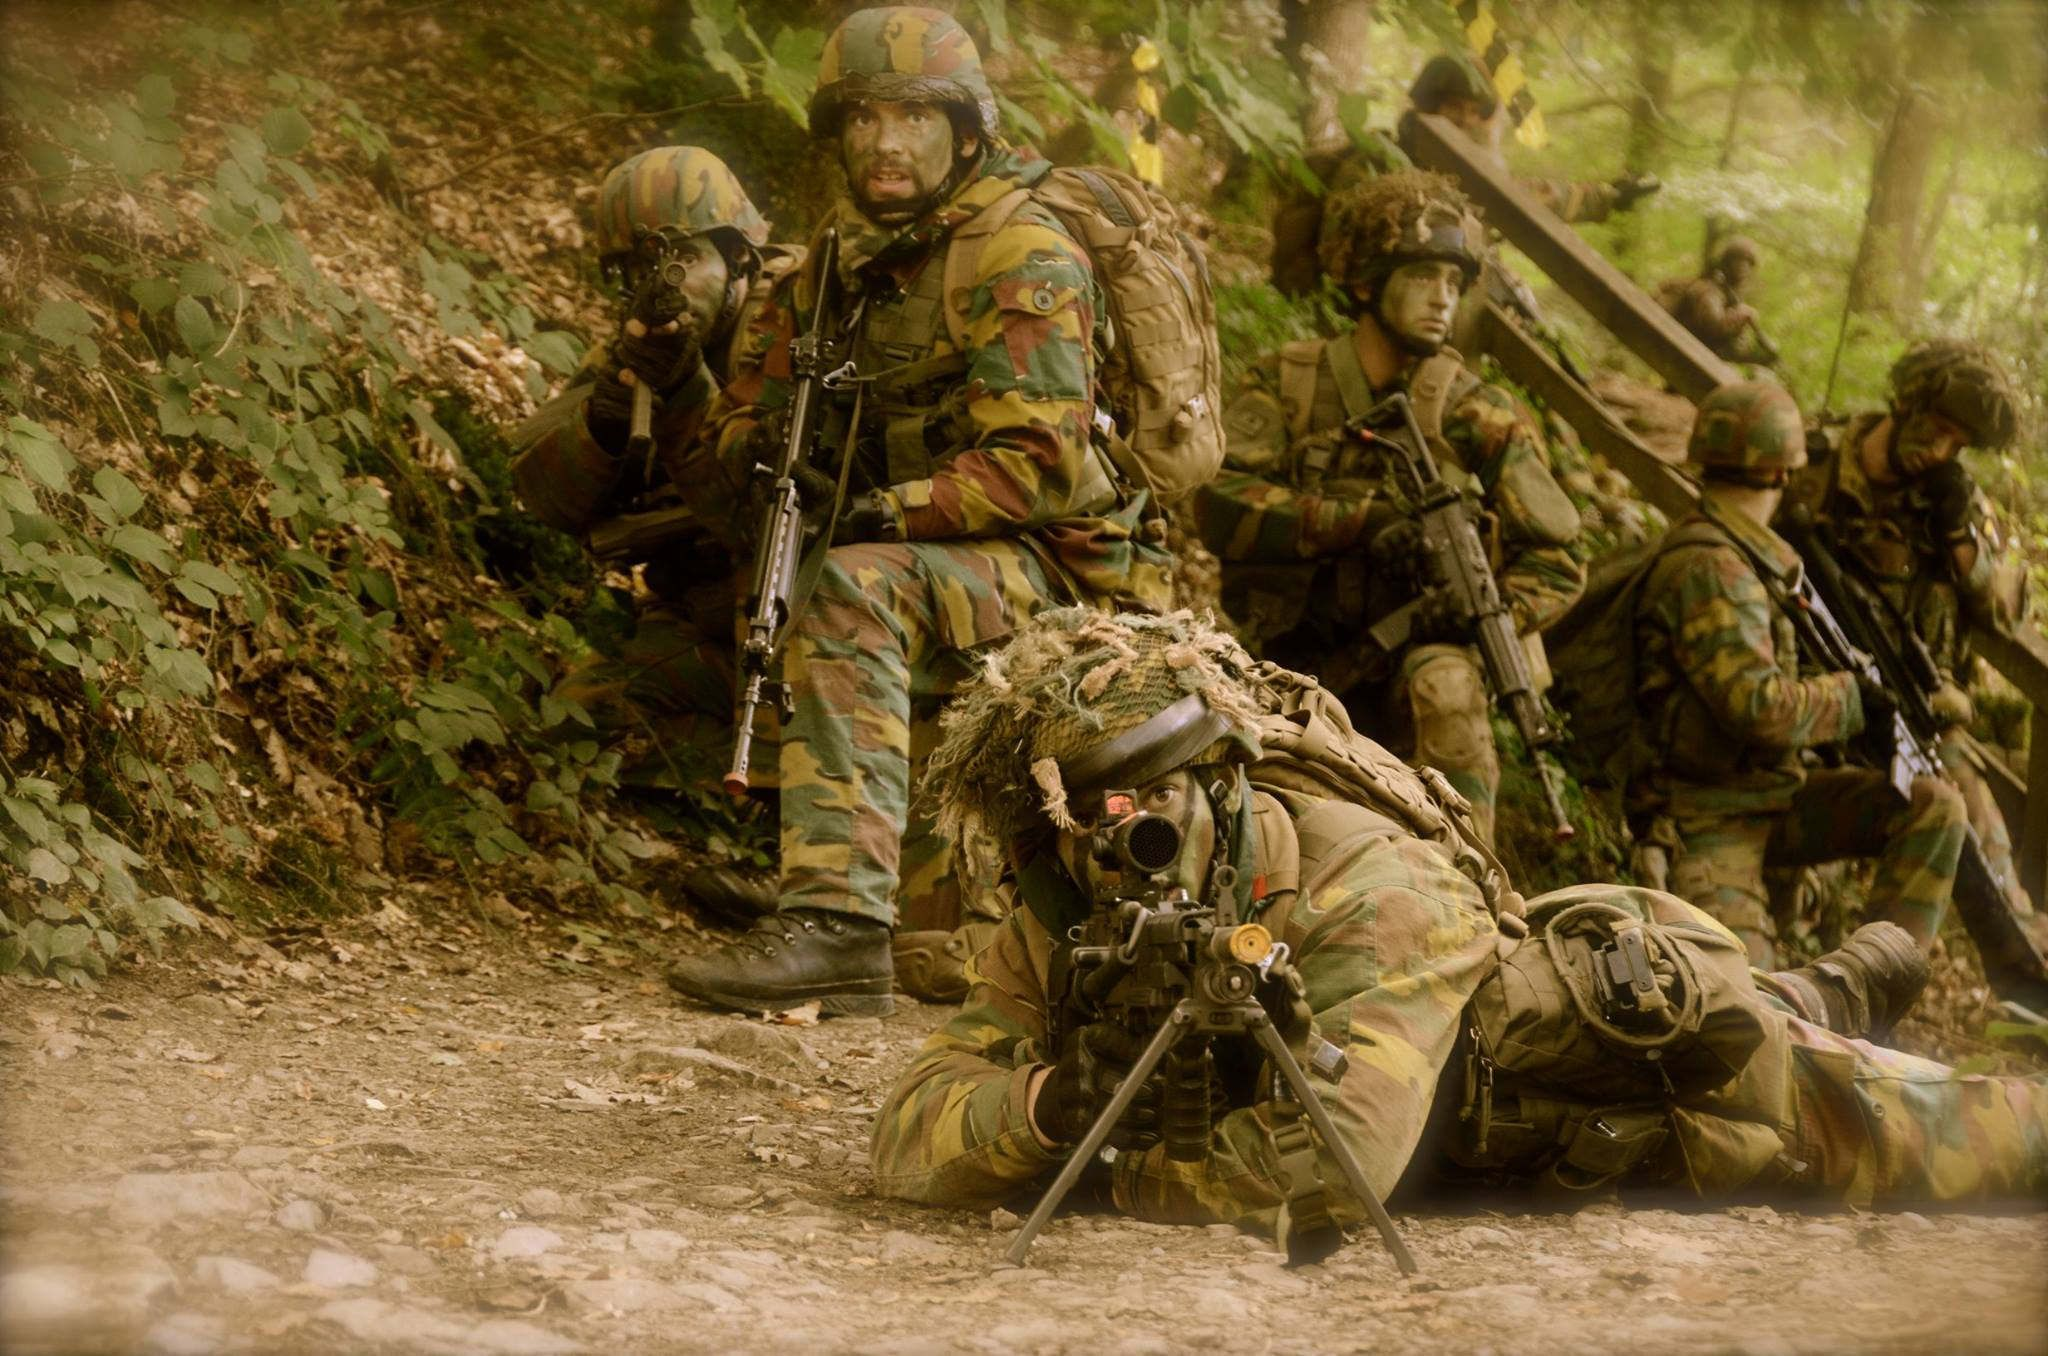 Belgian Para Commandos, Soldiers, Weapons